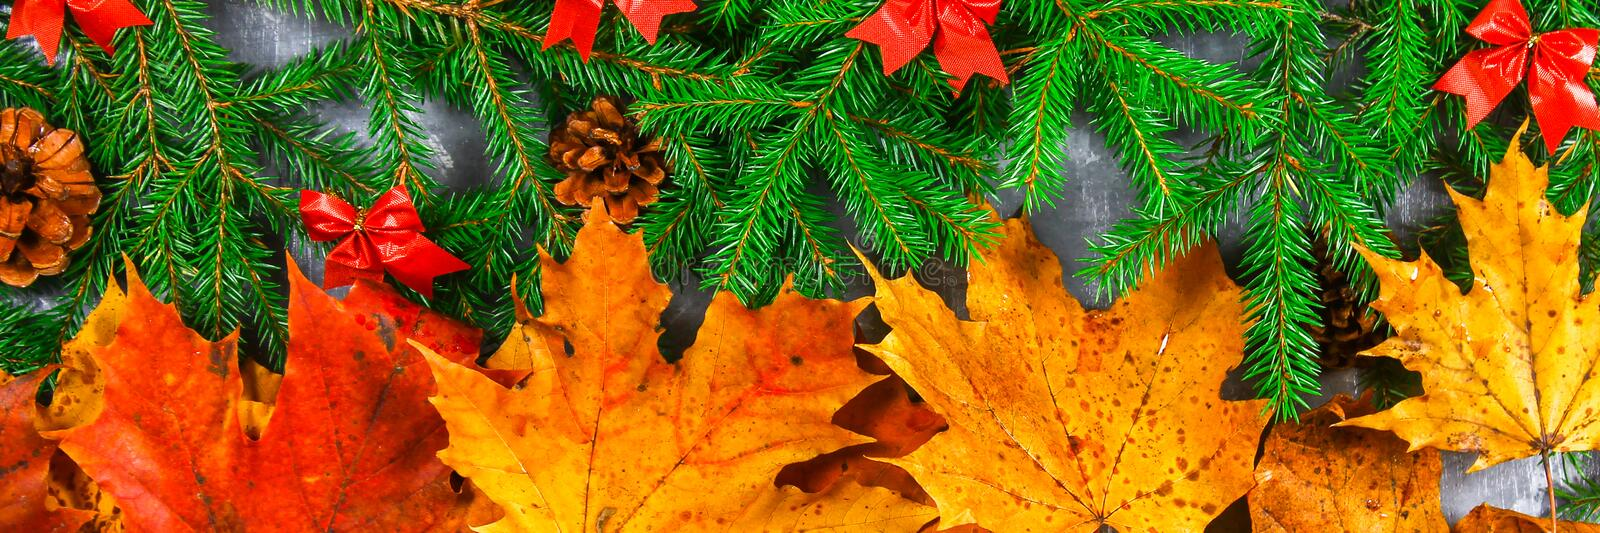 Yellow and orange autumn leaves turn into green fir branches with cones and Christmas decorations. Change of autumn for the winter royalty free stock photos